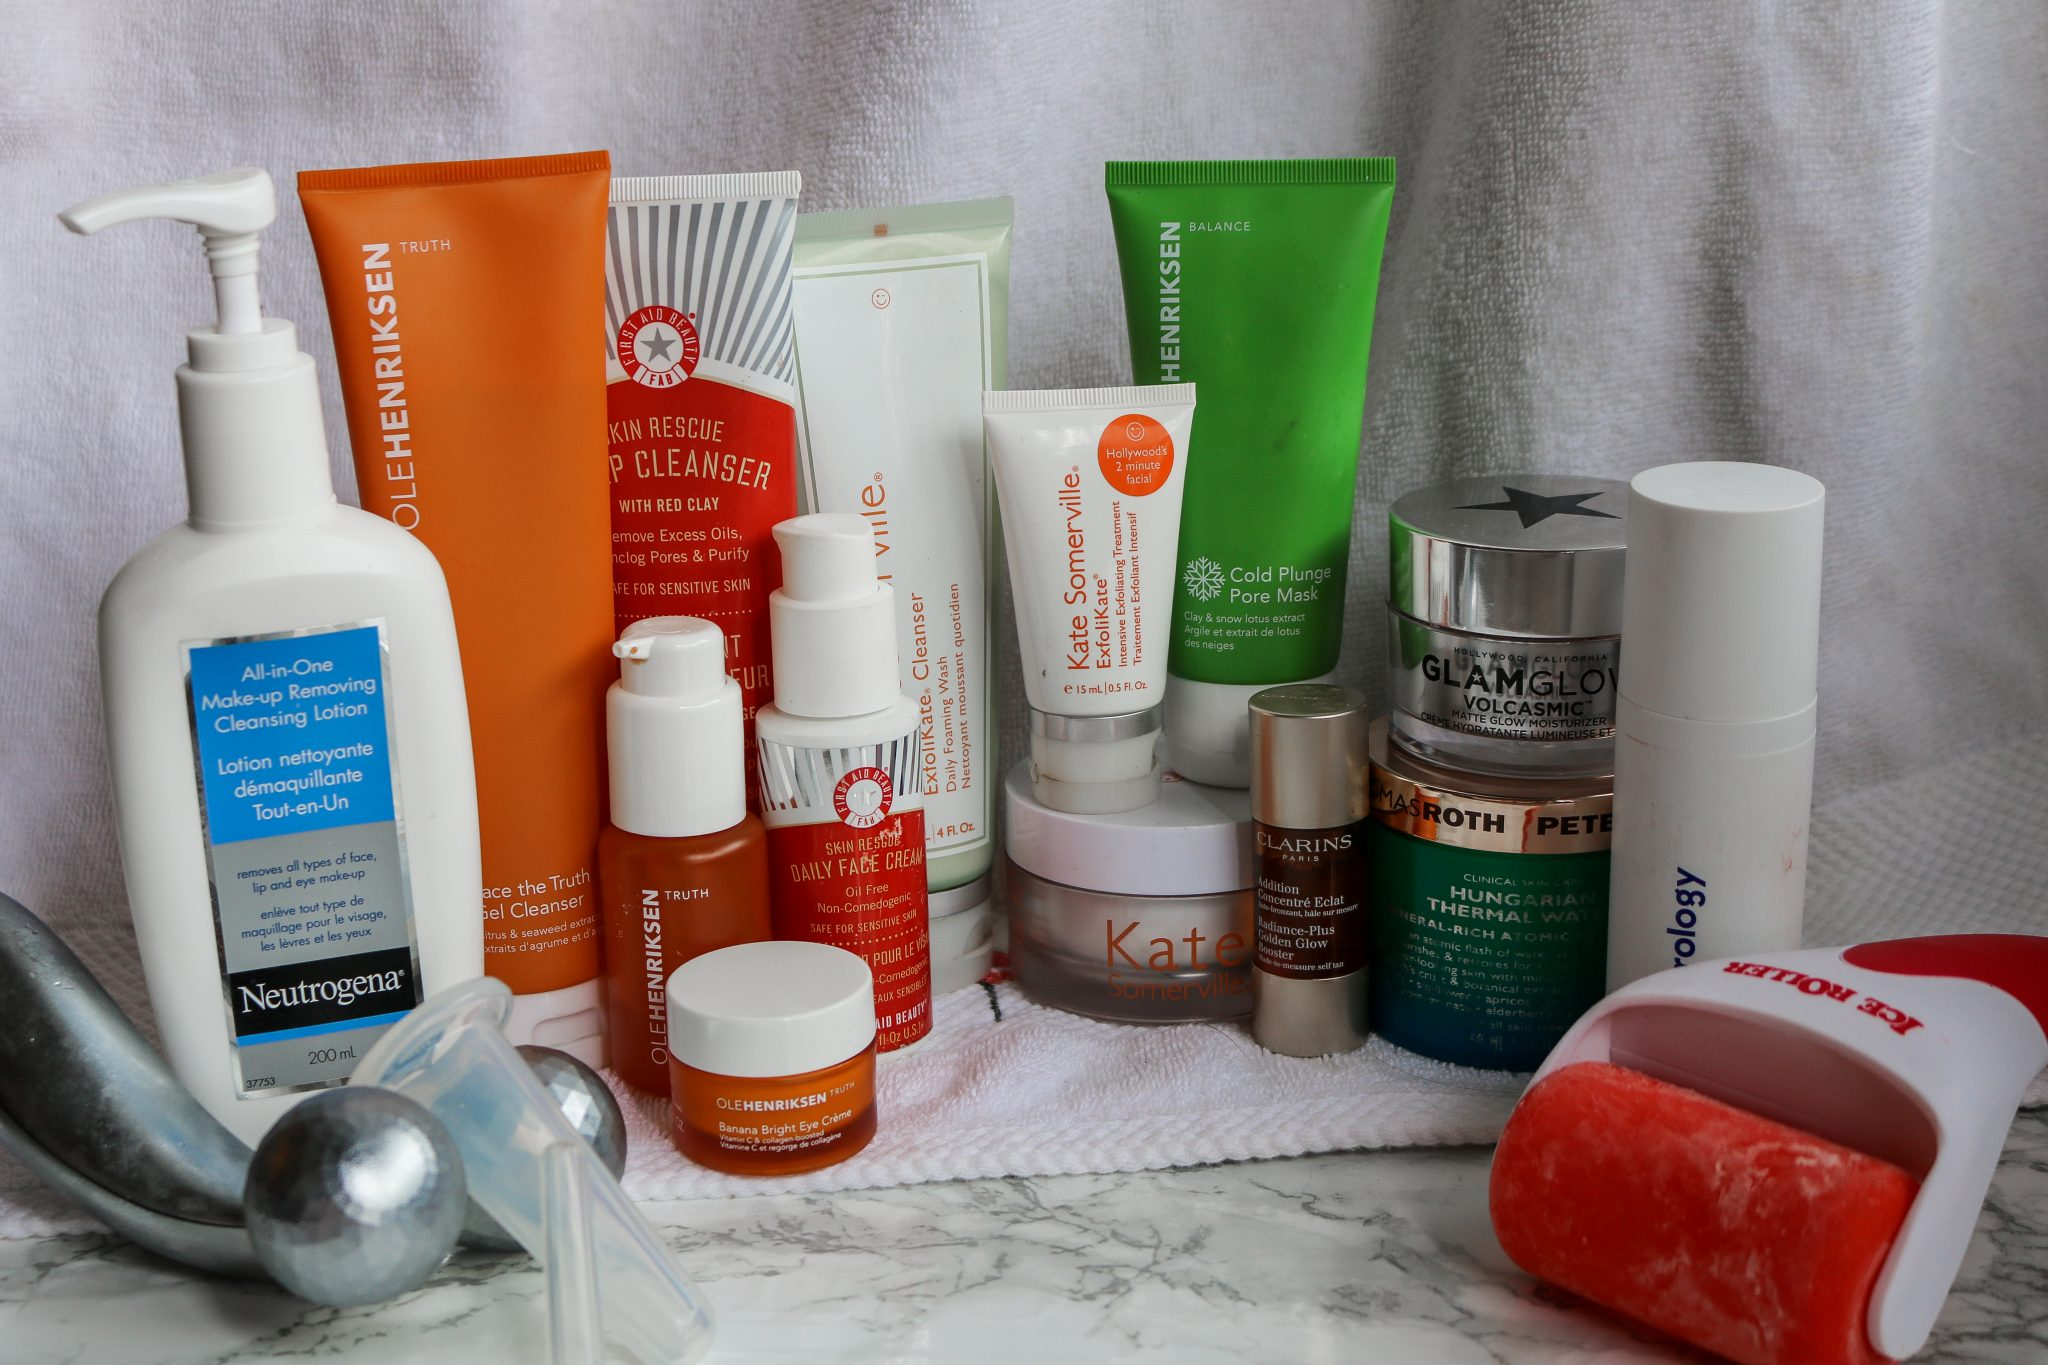 The-Hungarian-Brunette-My-skincare-routine-1-of-2.jpg